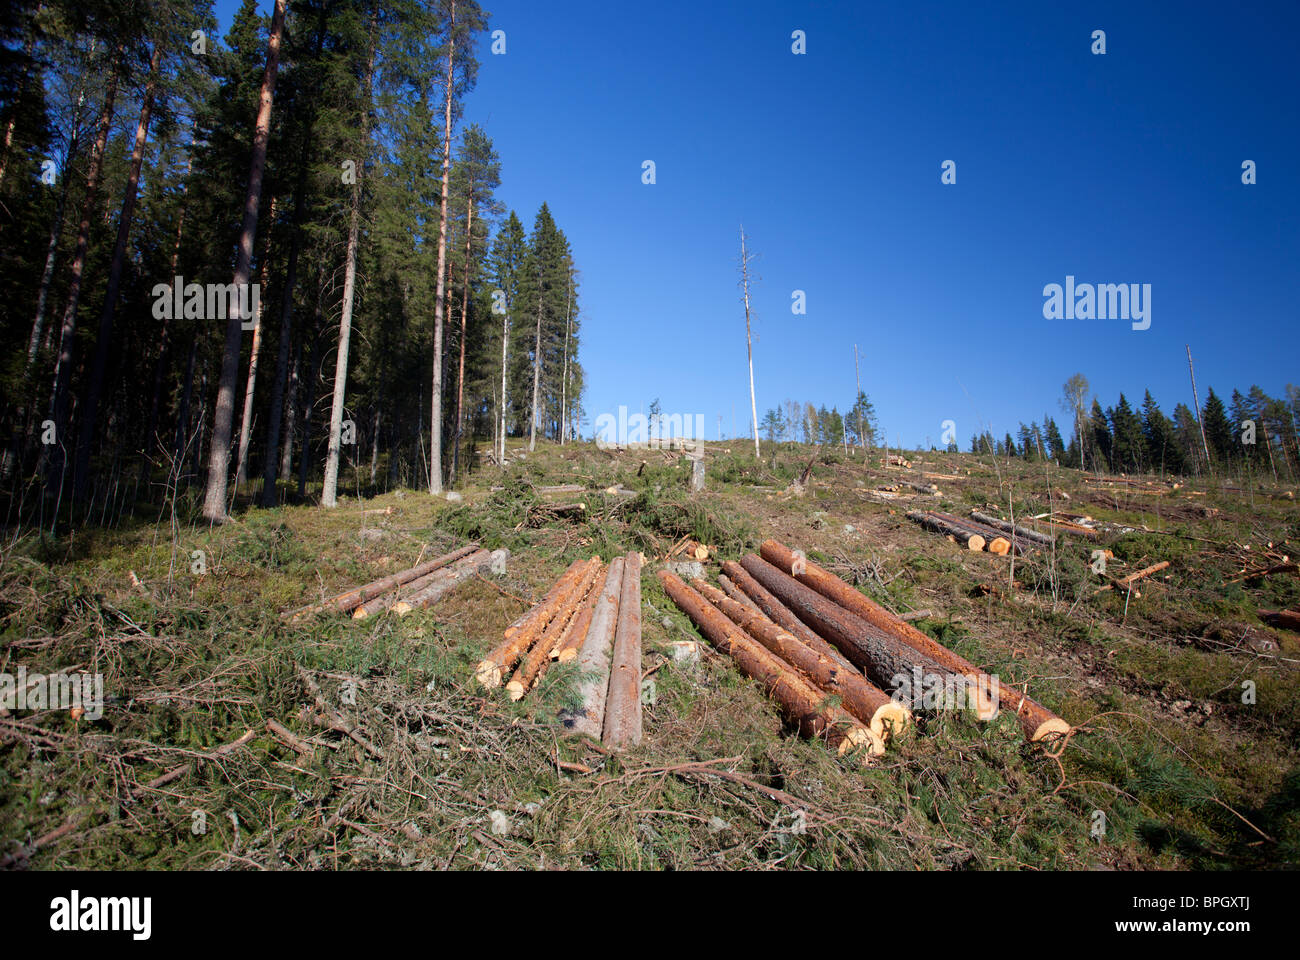 Pine and spruce logs at clear cutting area , Finland - Stock Image